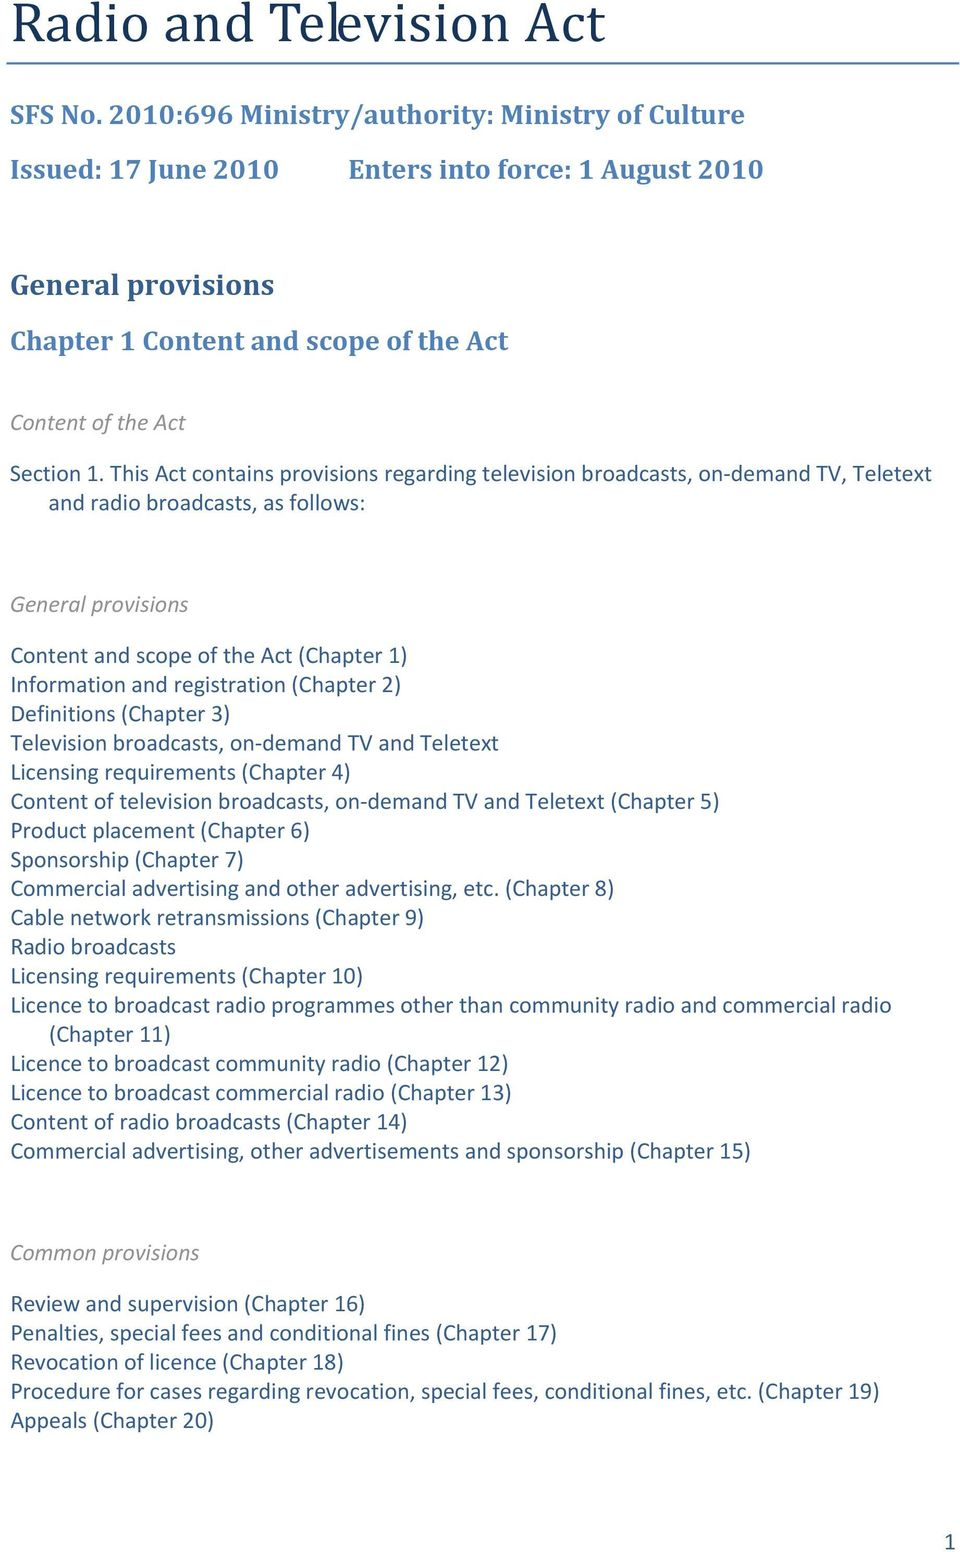 This Act contains provisions regarding television broadcasts, on demand TV, Teletext and radio broadcasts, as follows: General provisions Content and scope of the Act (Chapter 1) Information and